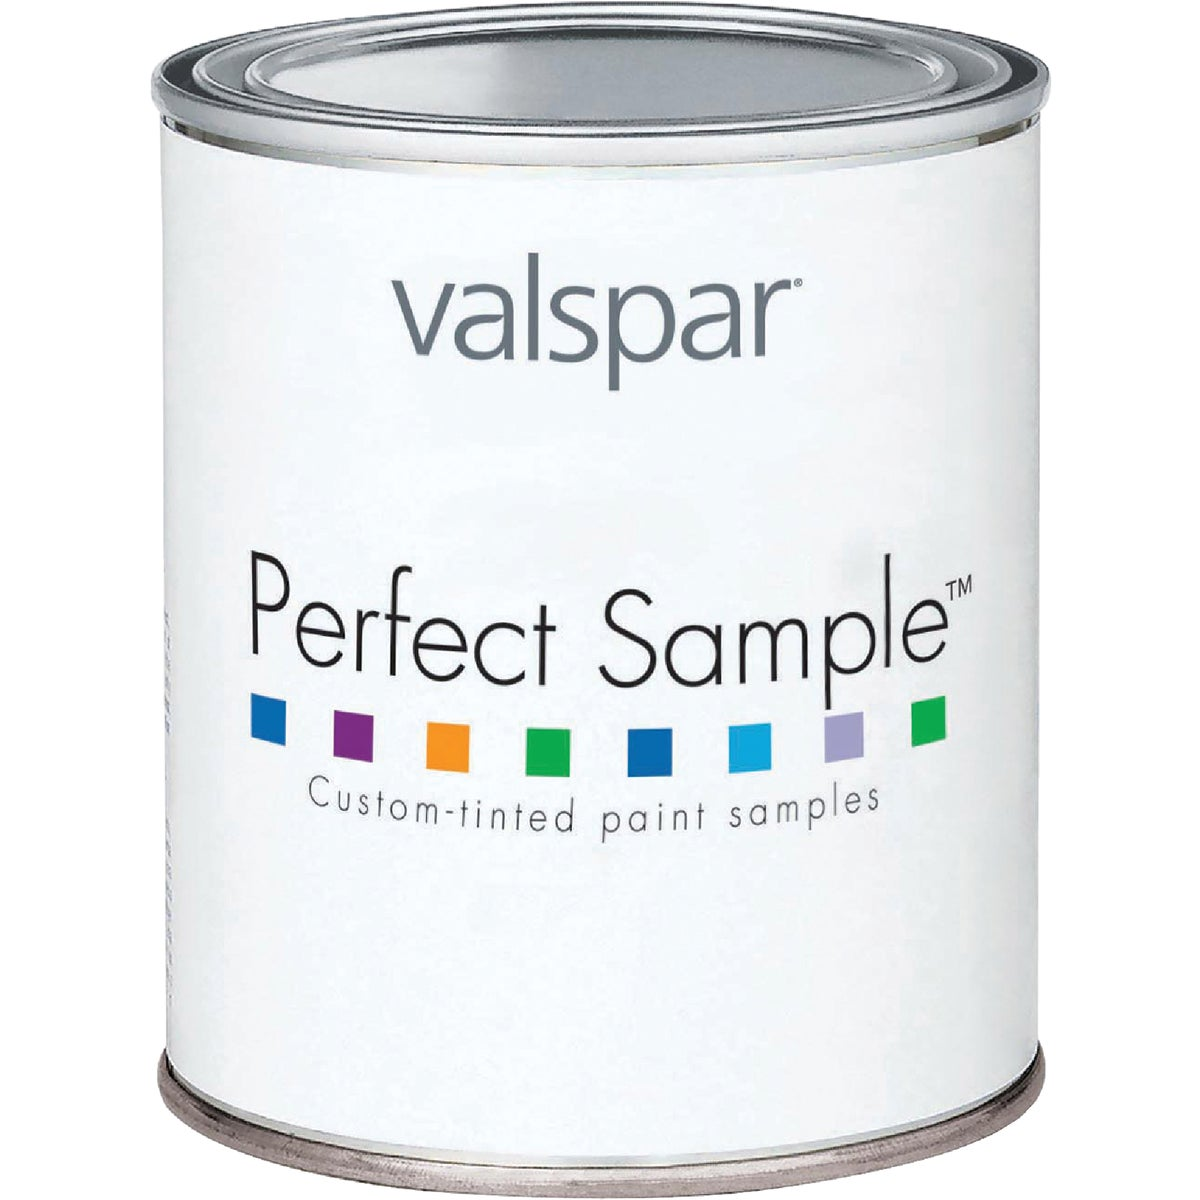 TINT BASE SAMPLE PAINT - 027.0003402.004 by Valspar Corp